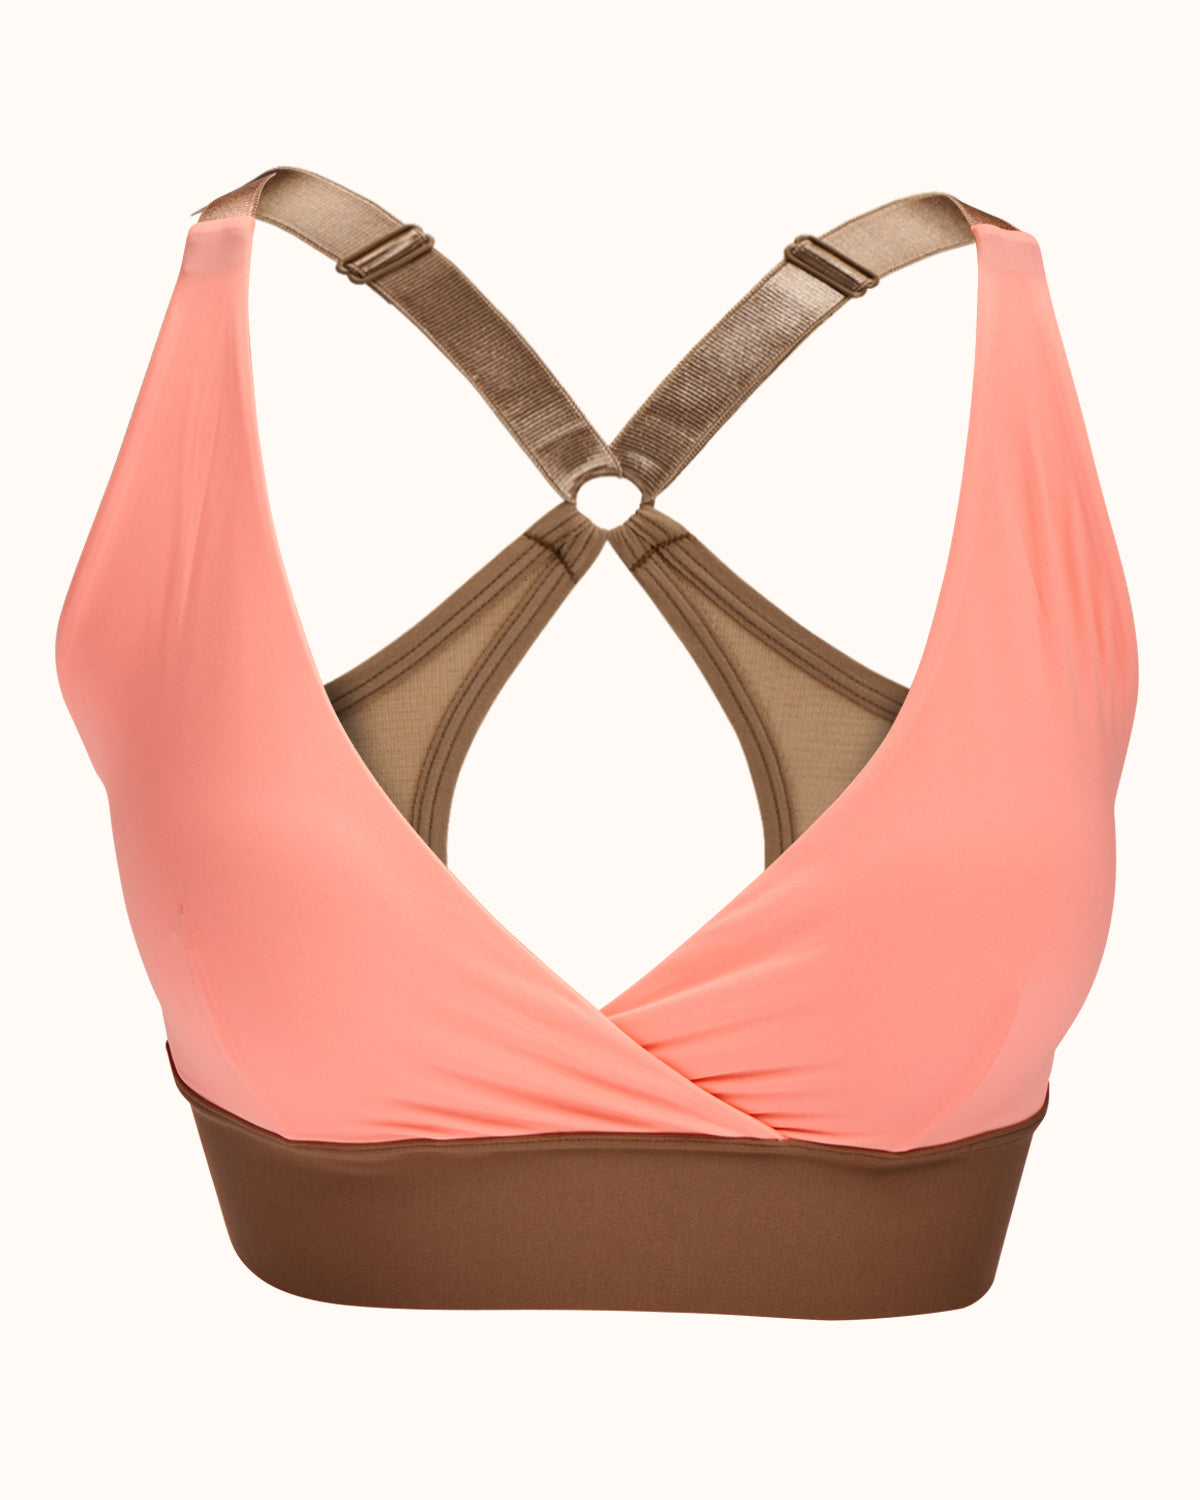 Coral, pocketed wrap sports bra with racerback, back closure and adjustable strap.